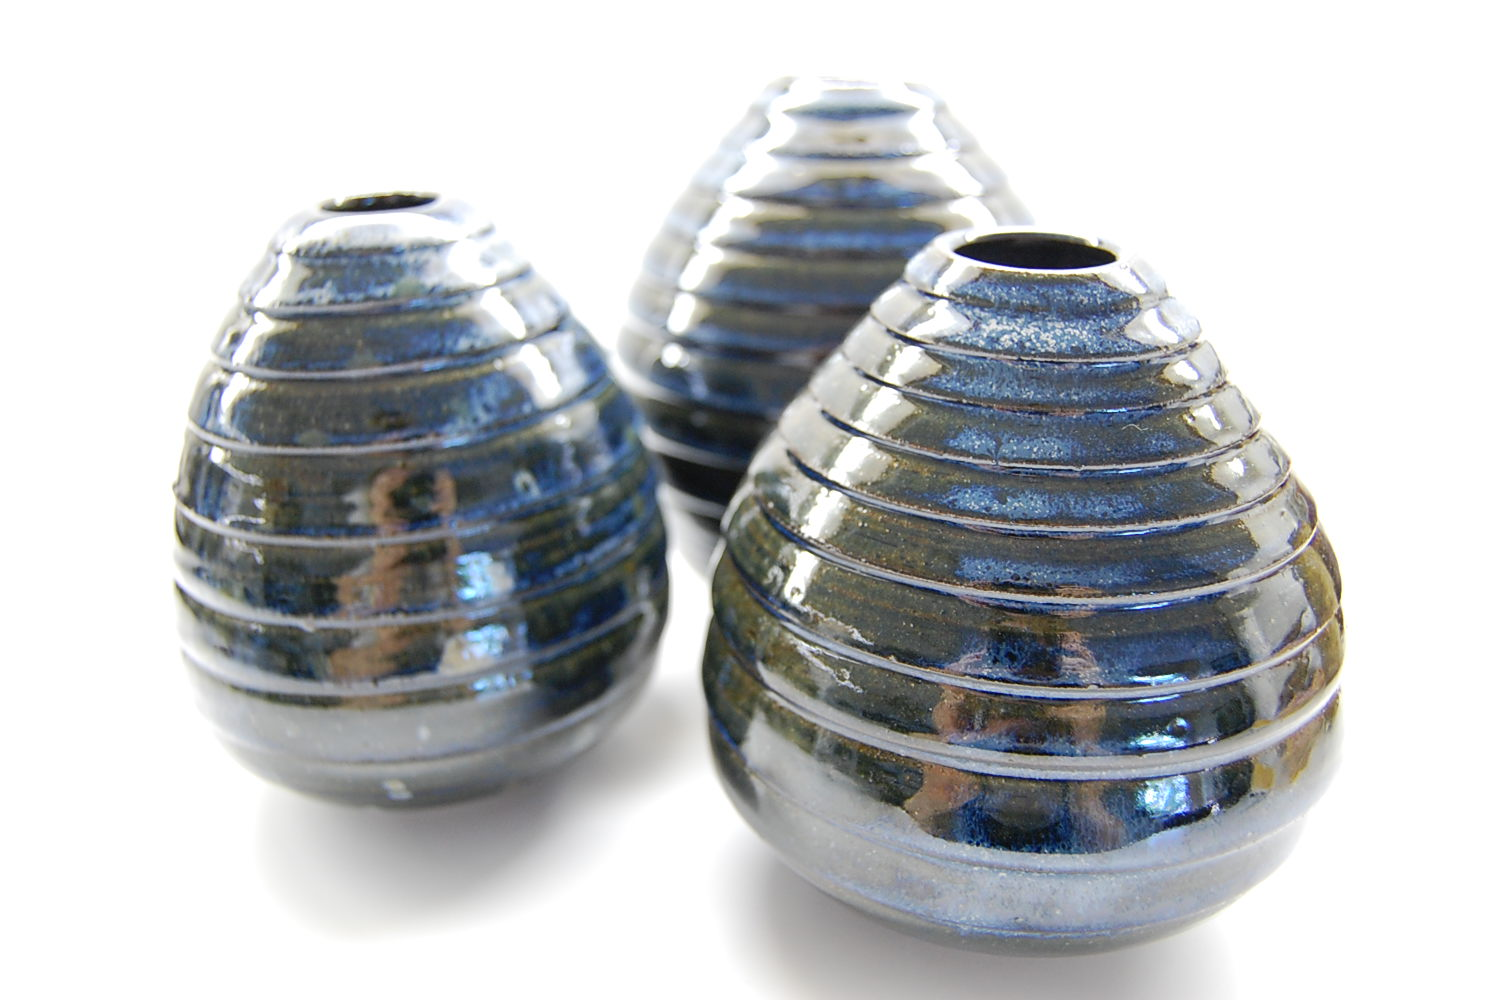 Pottery by Helen O'Sullivan at Wandering Winter Craft Show